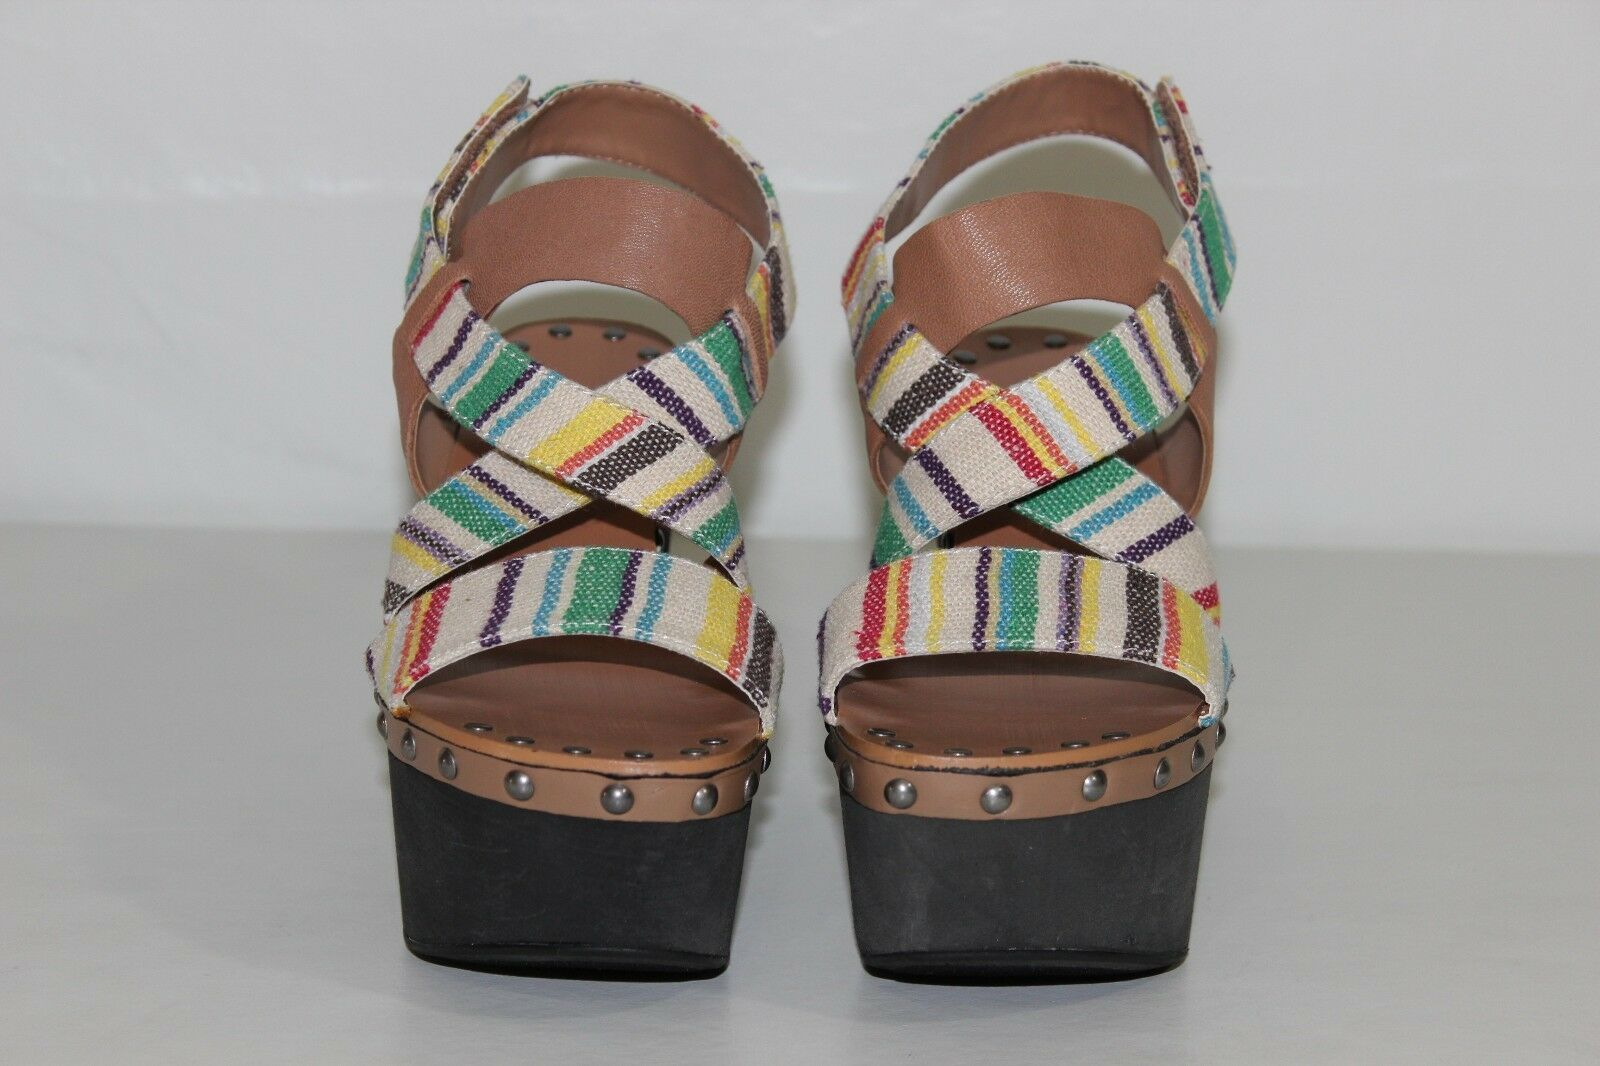 Joe's M Donna 7 M Joe's Brown Multi Color Straps Open Toe Strappy Wedges Sandals Shoes e38777